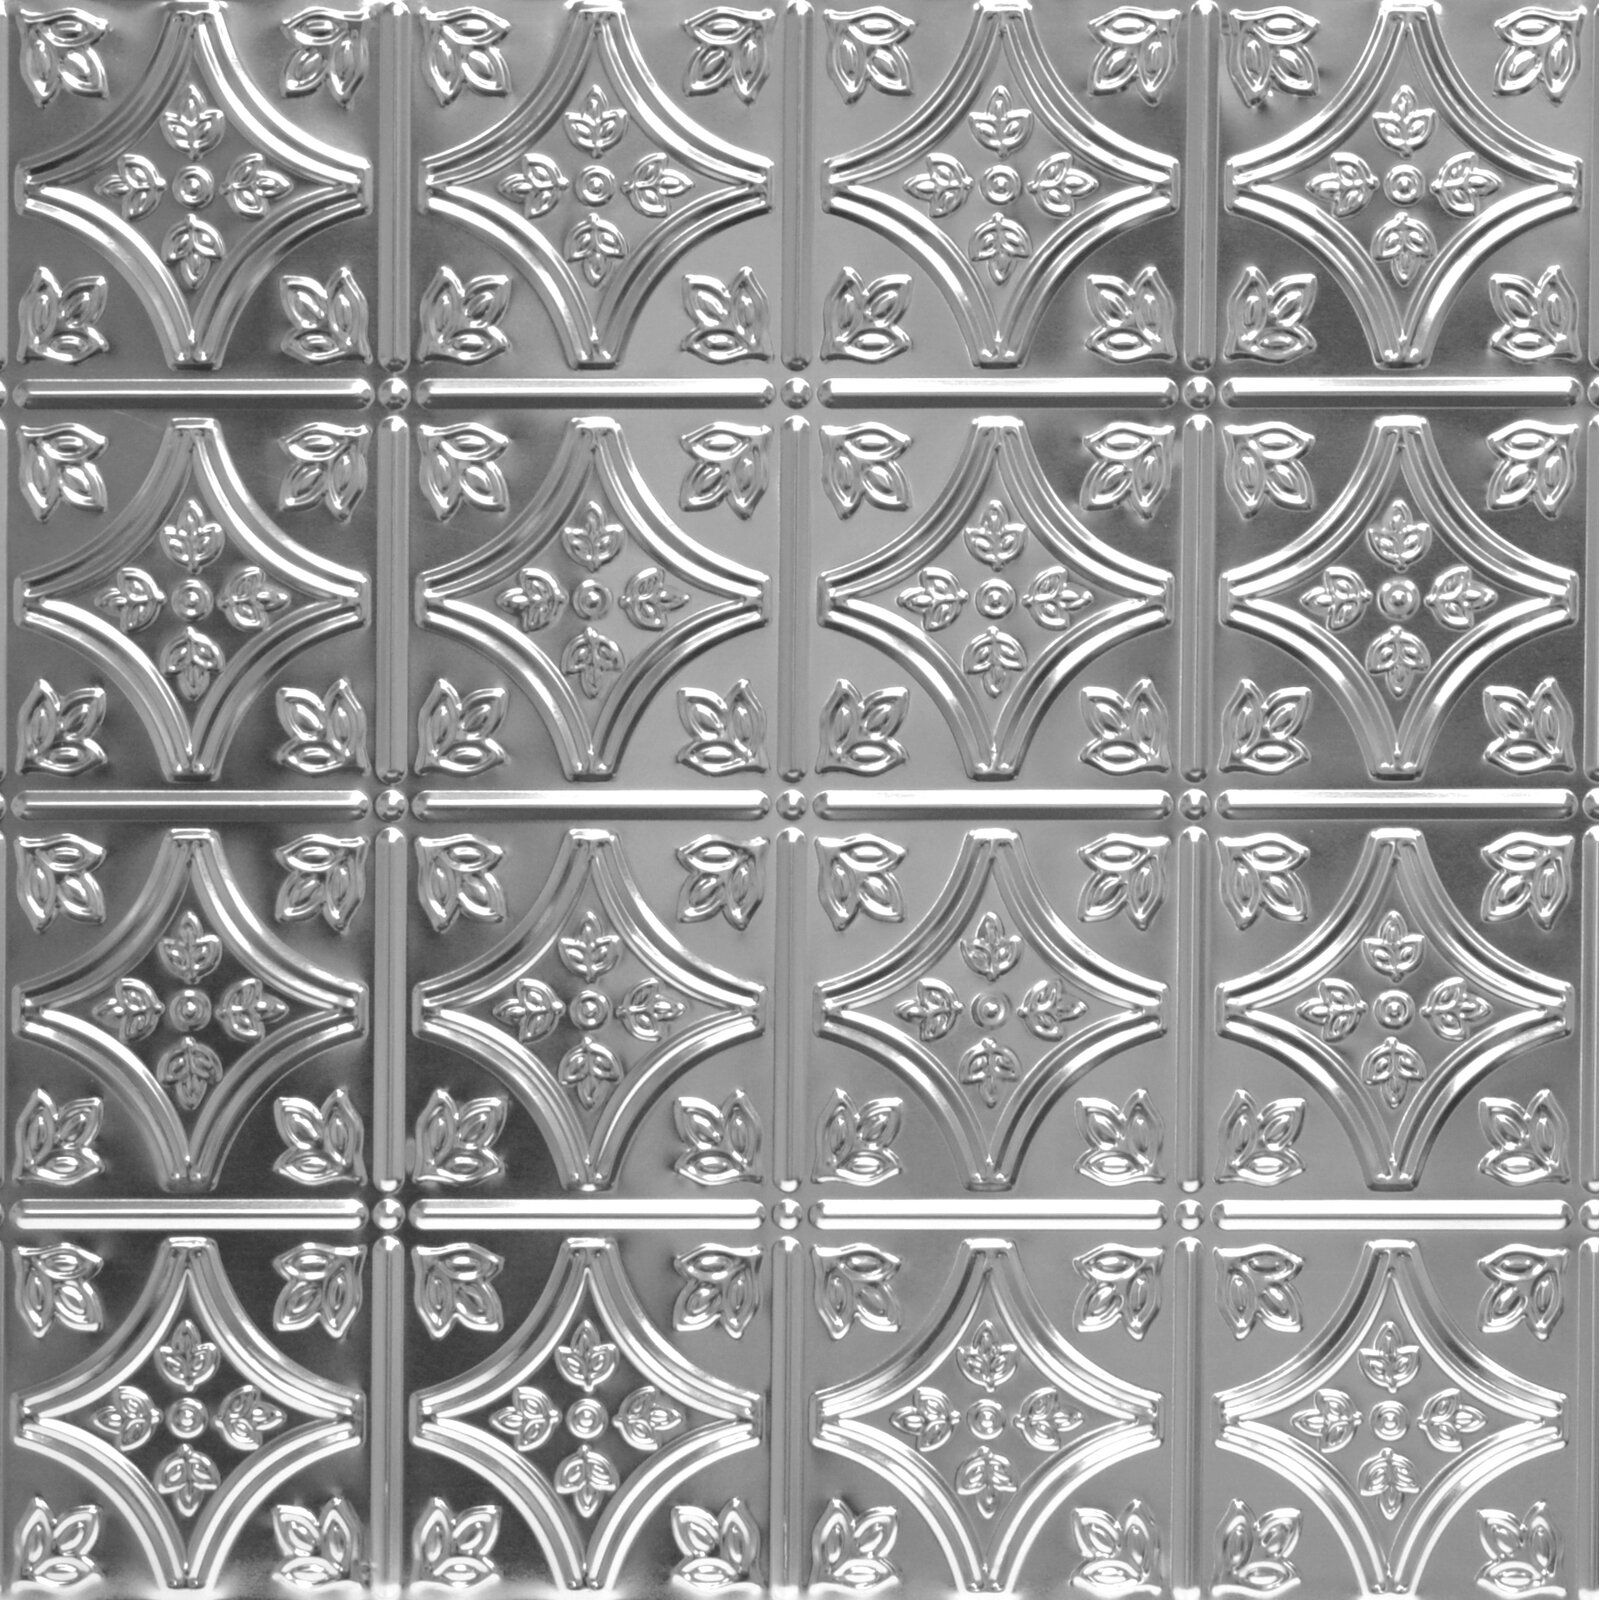 23 75 X 23 75 Metal Tile In Lacquer Steel Metal Ceiling Tiles Metal Tile Ceiling Tiles